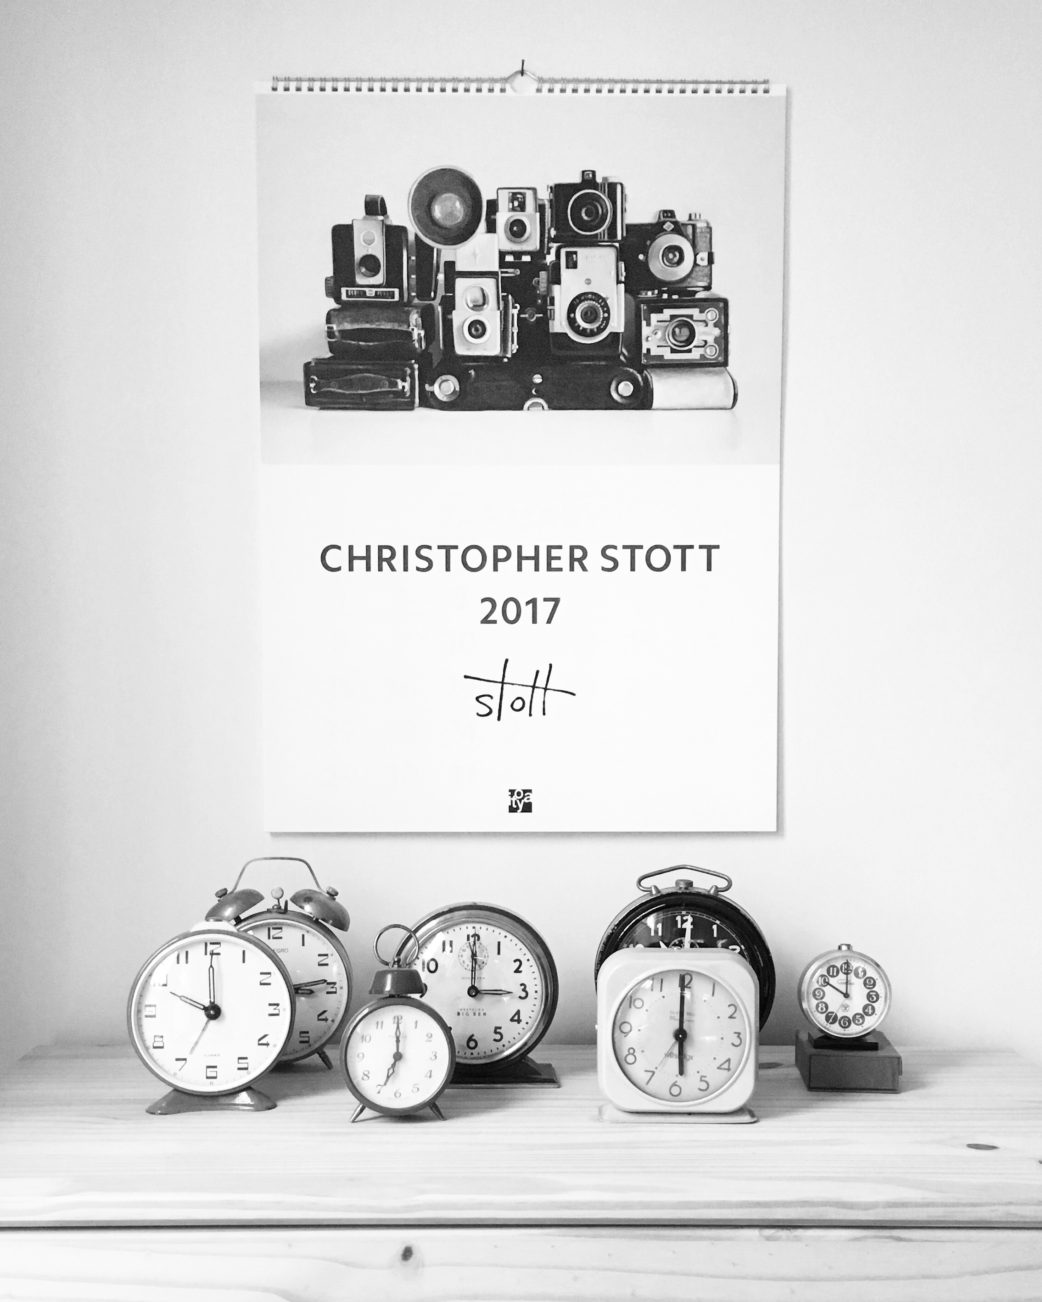 Christopher Stott ITOYA Japan 2017 Calendar